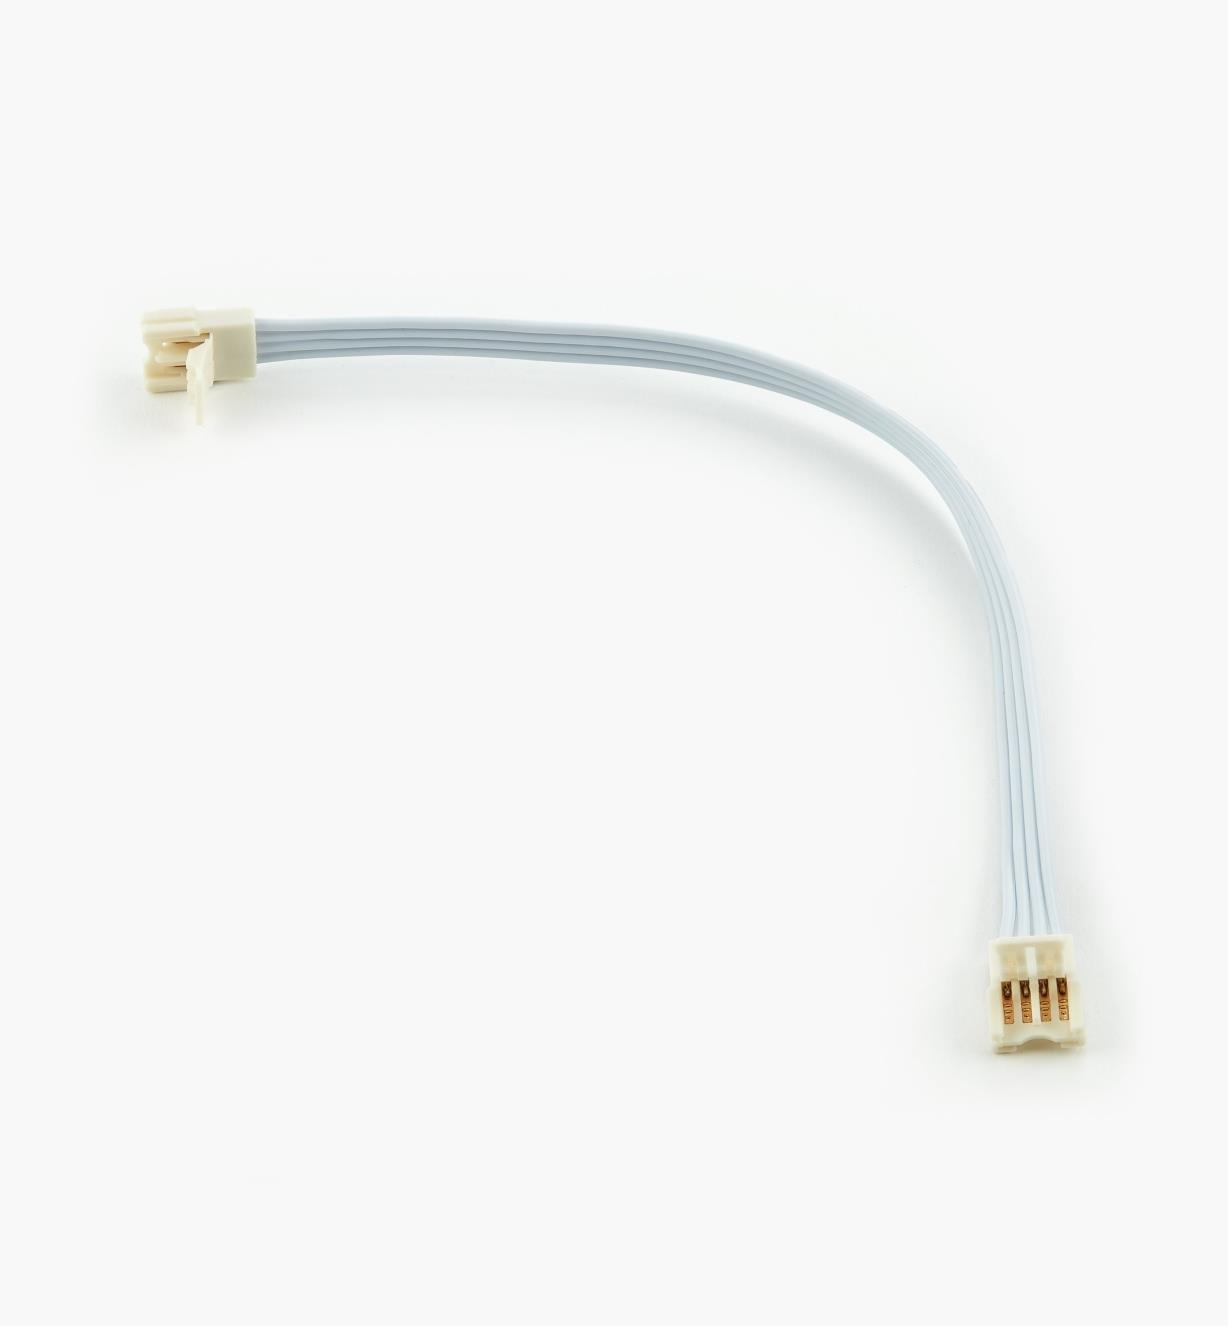 00U4143 - Wire Lead Connector